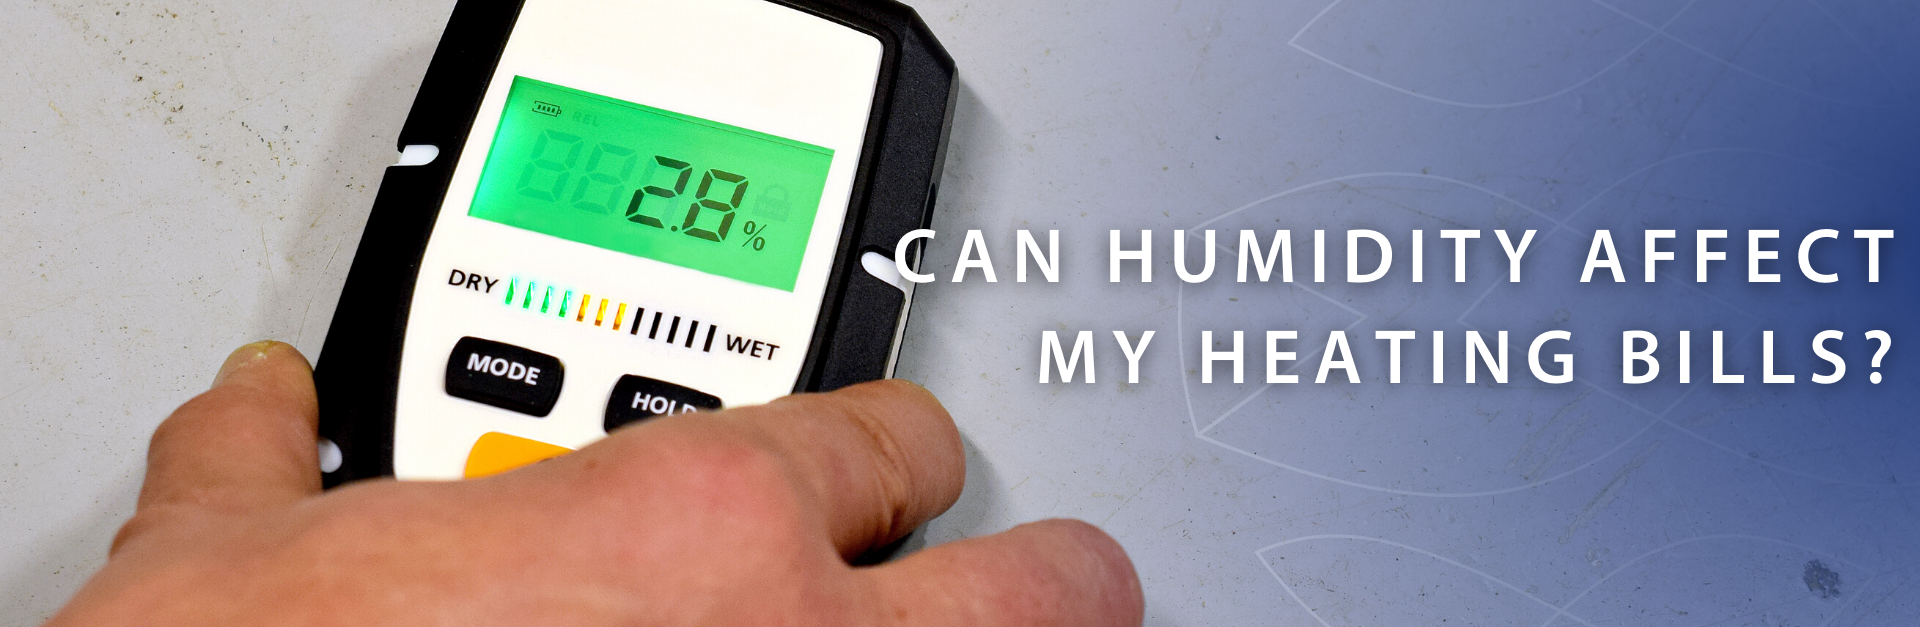 person holding a hygrometer to check if humidity affects heating bills